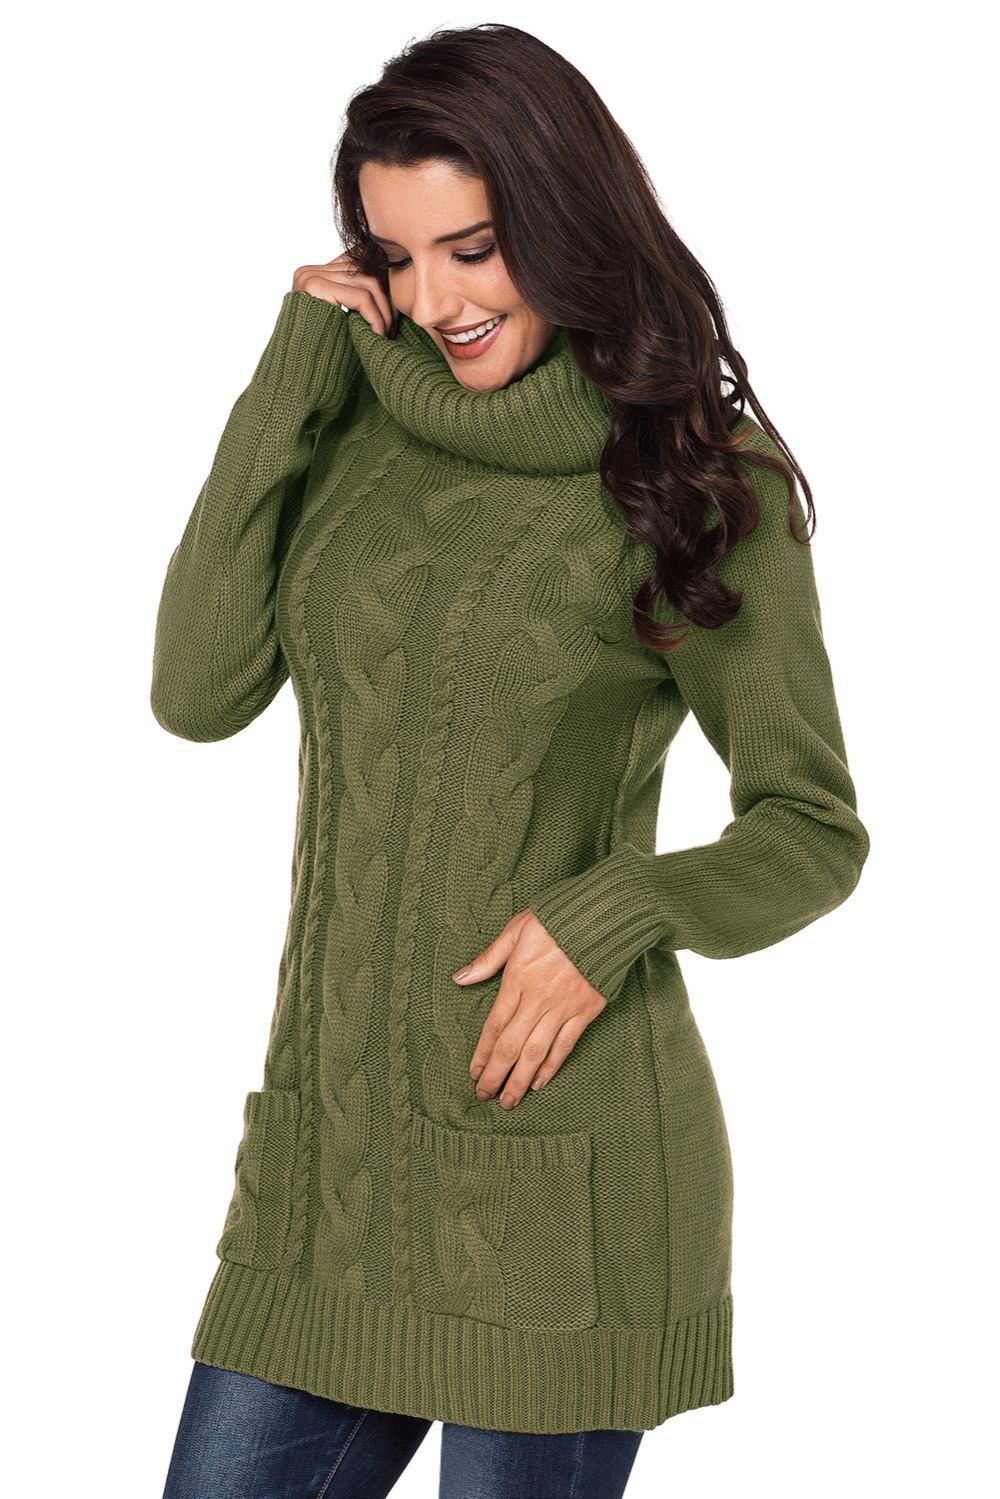 Olive-Cowl-Neck-Cable-Knit-Sweater-Dress-LC27836-9-4